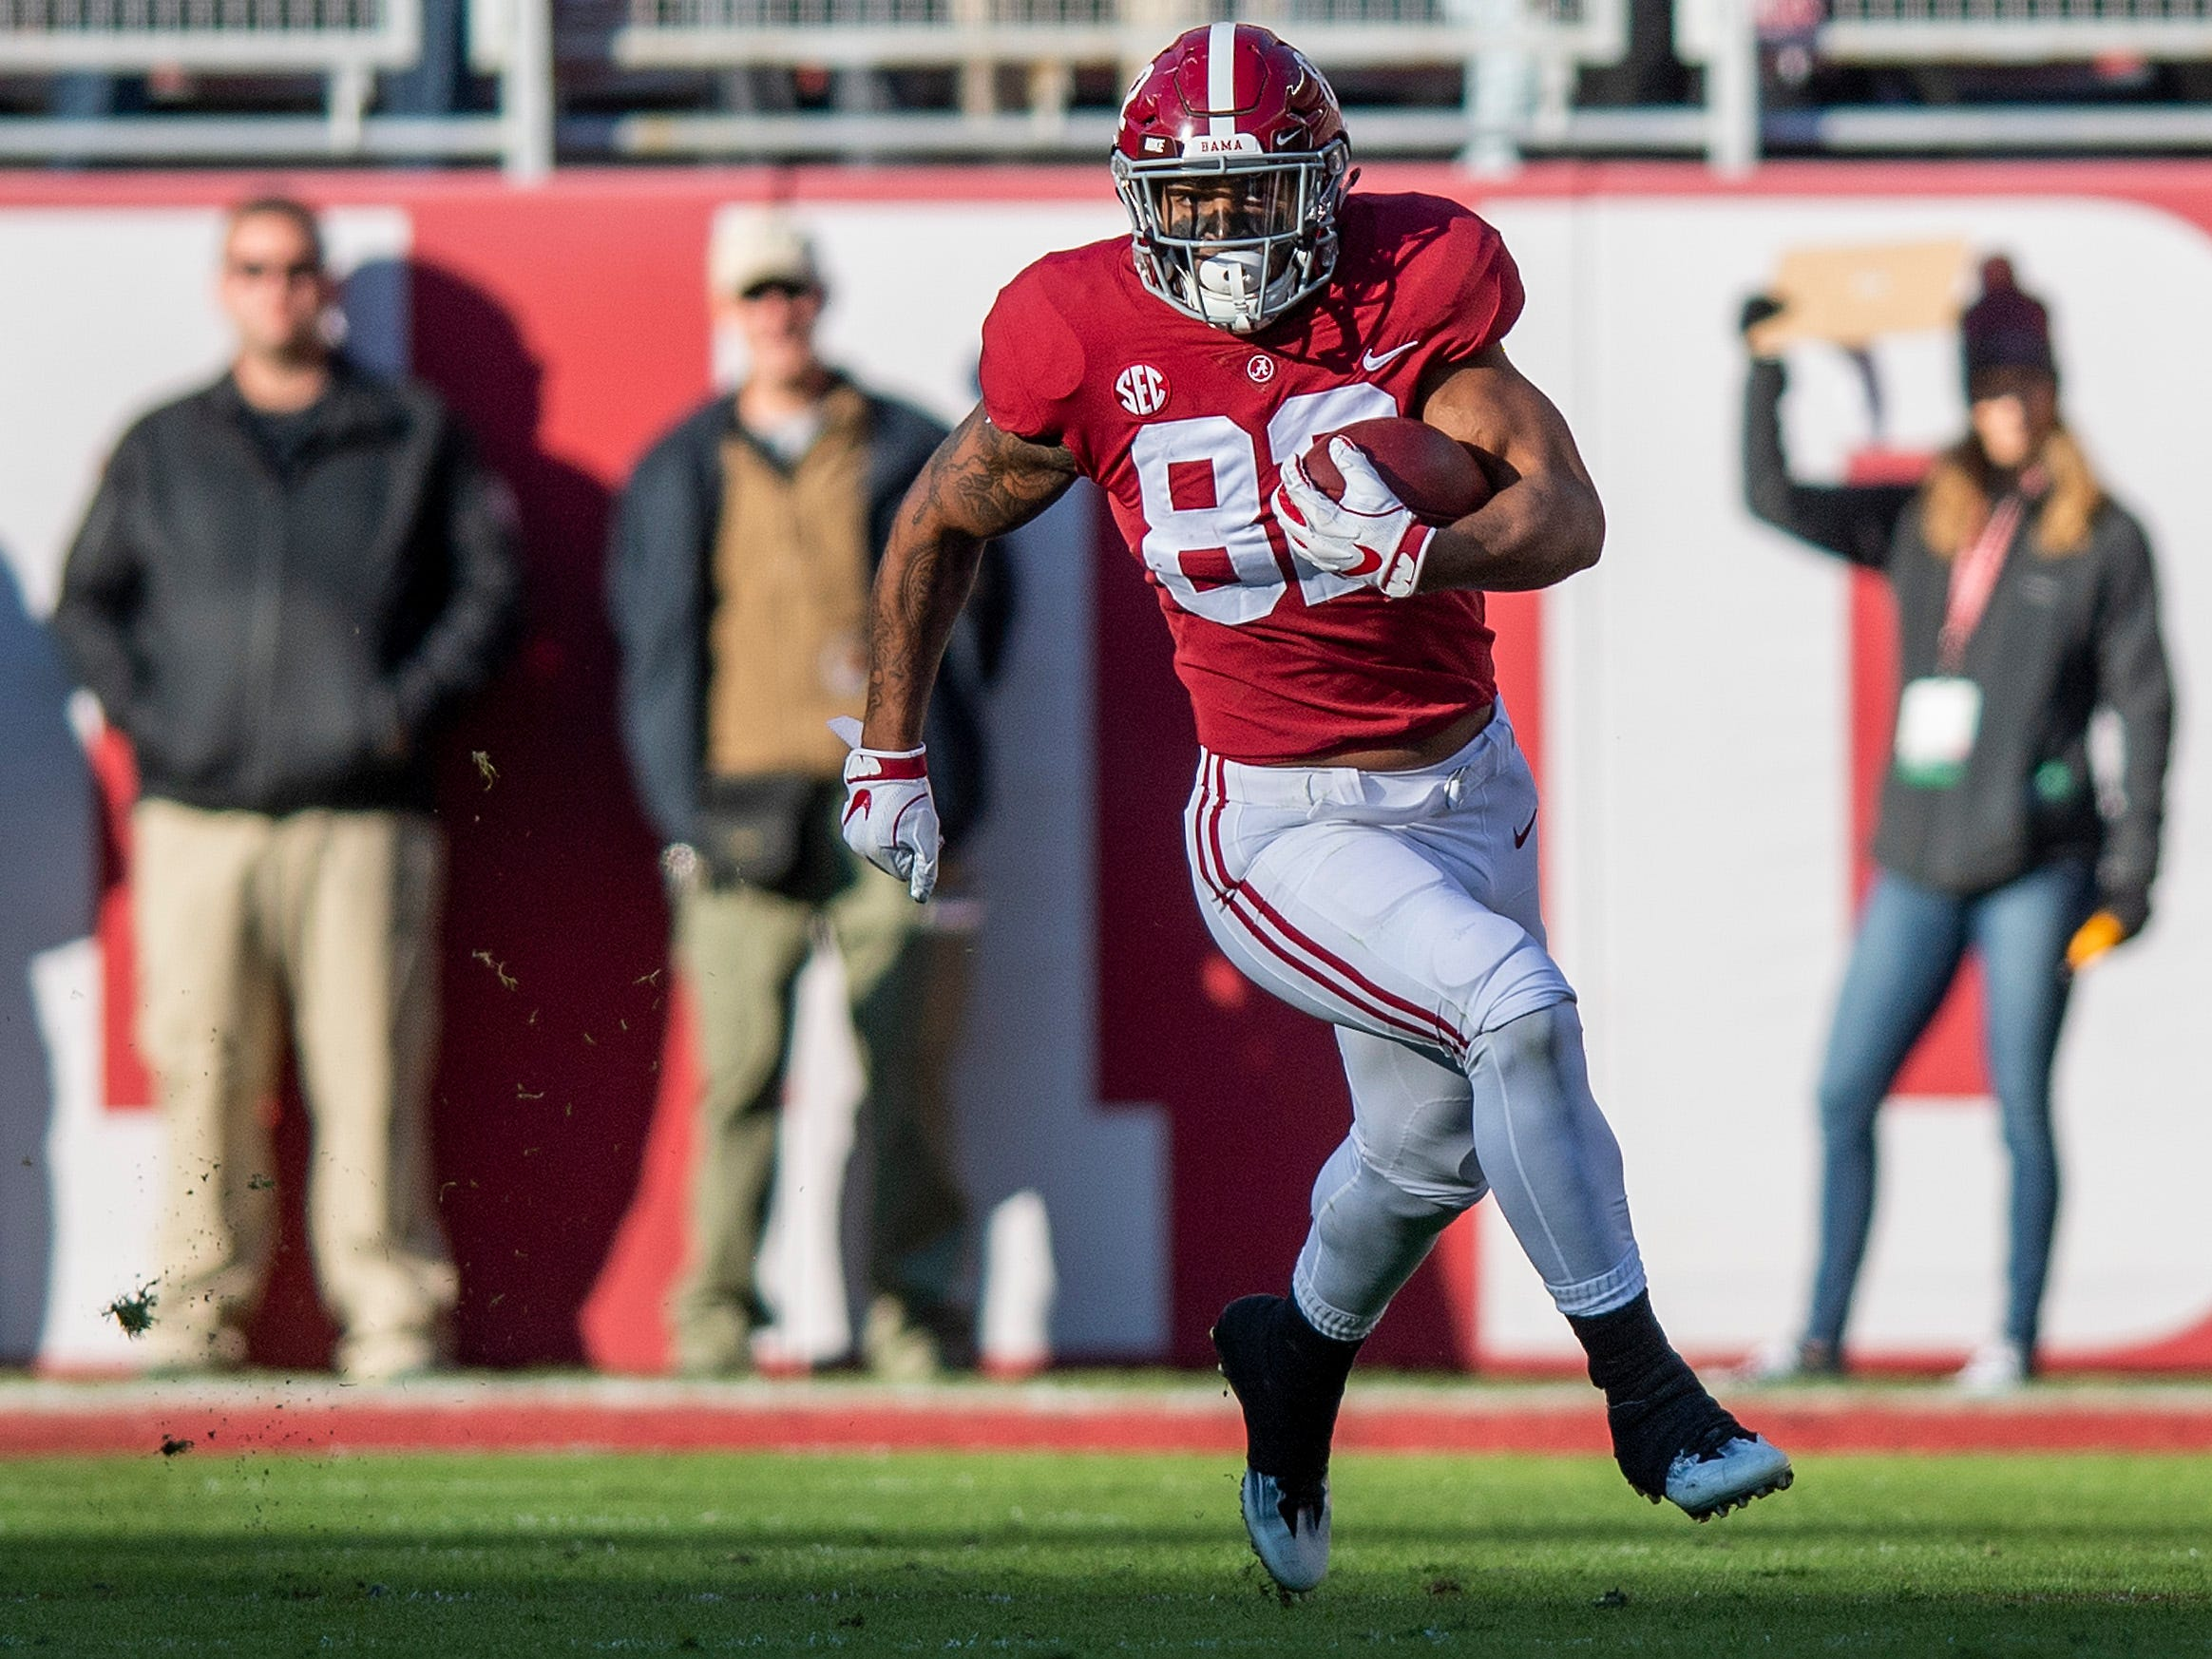 Alabama tight end Irv Smith Jr. (82) carries the ball in first half action against Mississippi State at Bryant Denny Stadium in Tuscaloosa, Ala., on Saturday November 9, 2018.